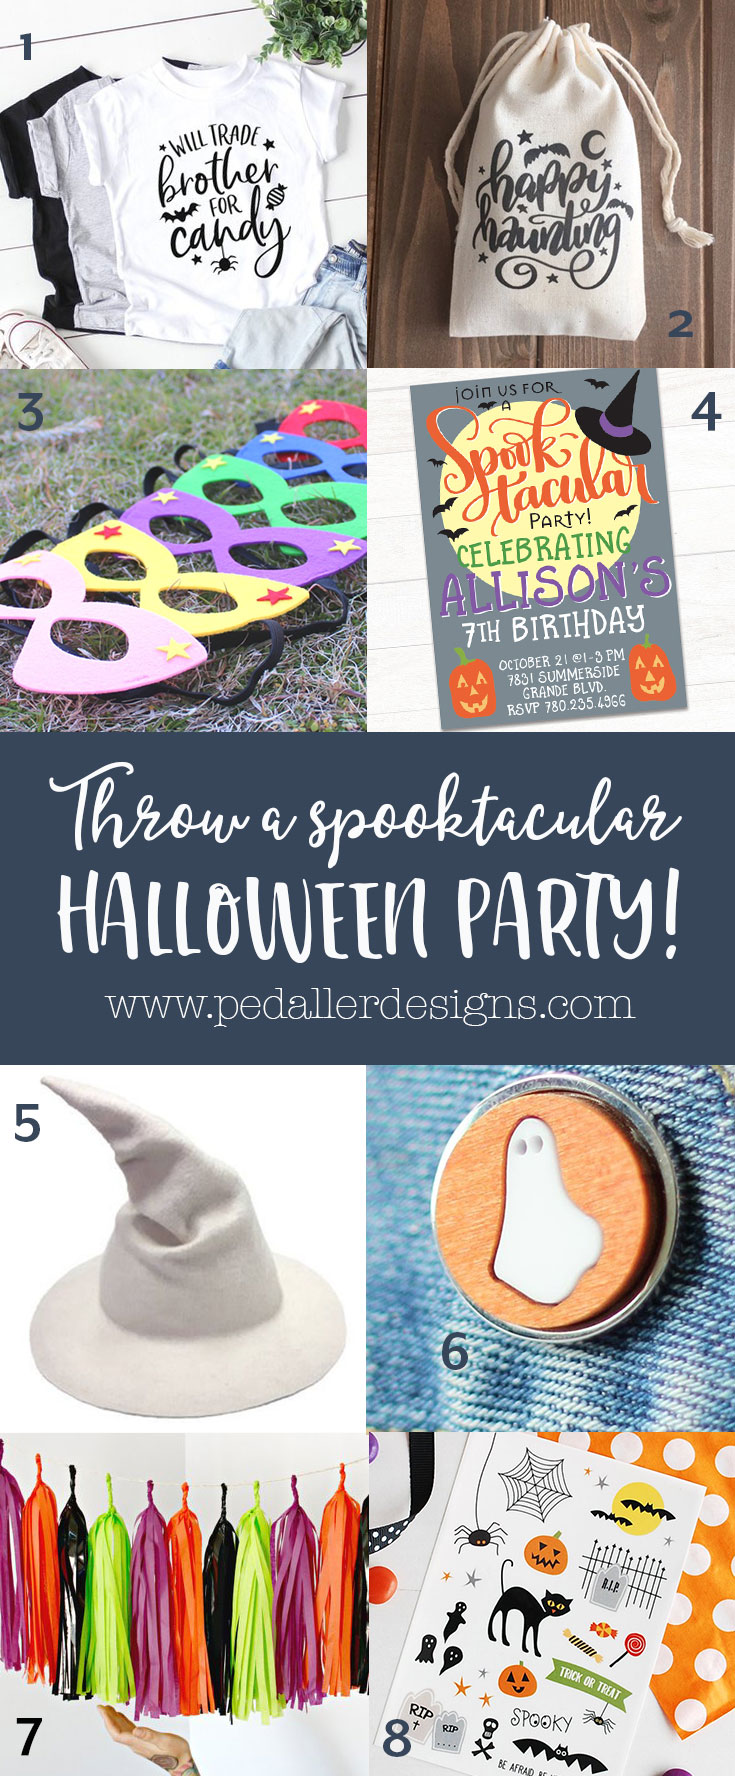 8 awesome ideas for the spookiest halloween party on the block!